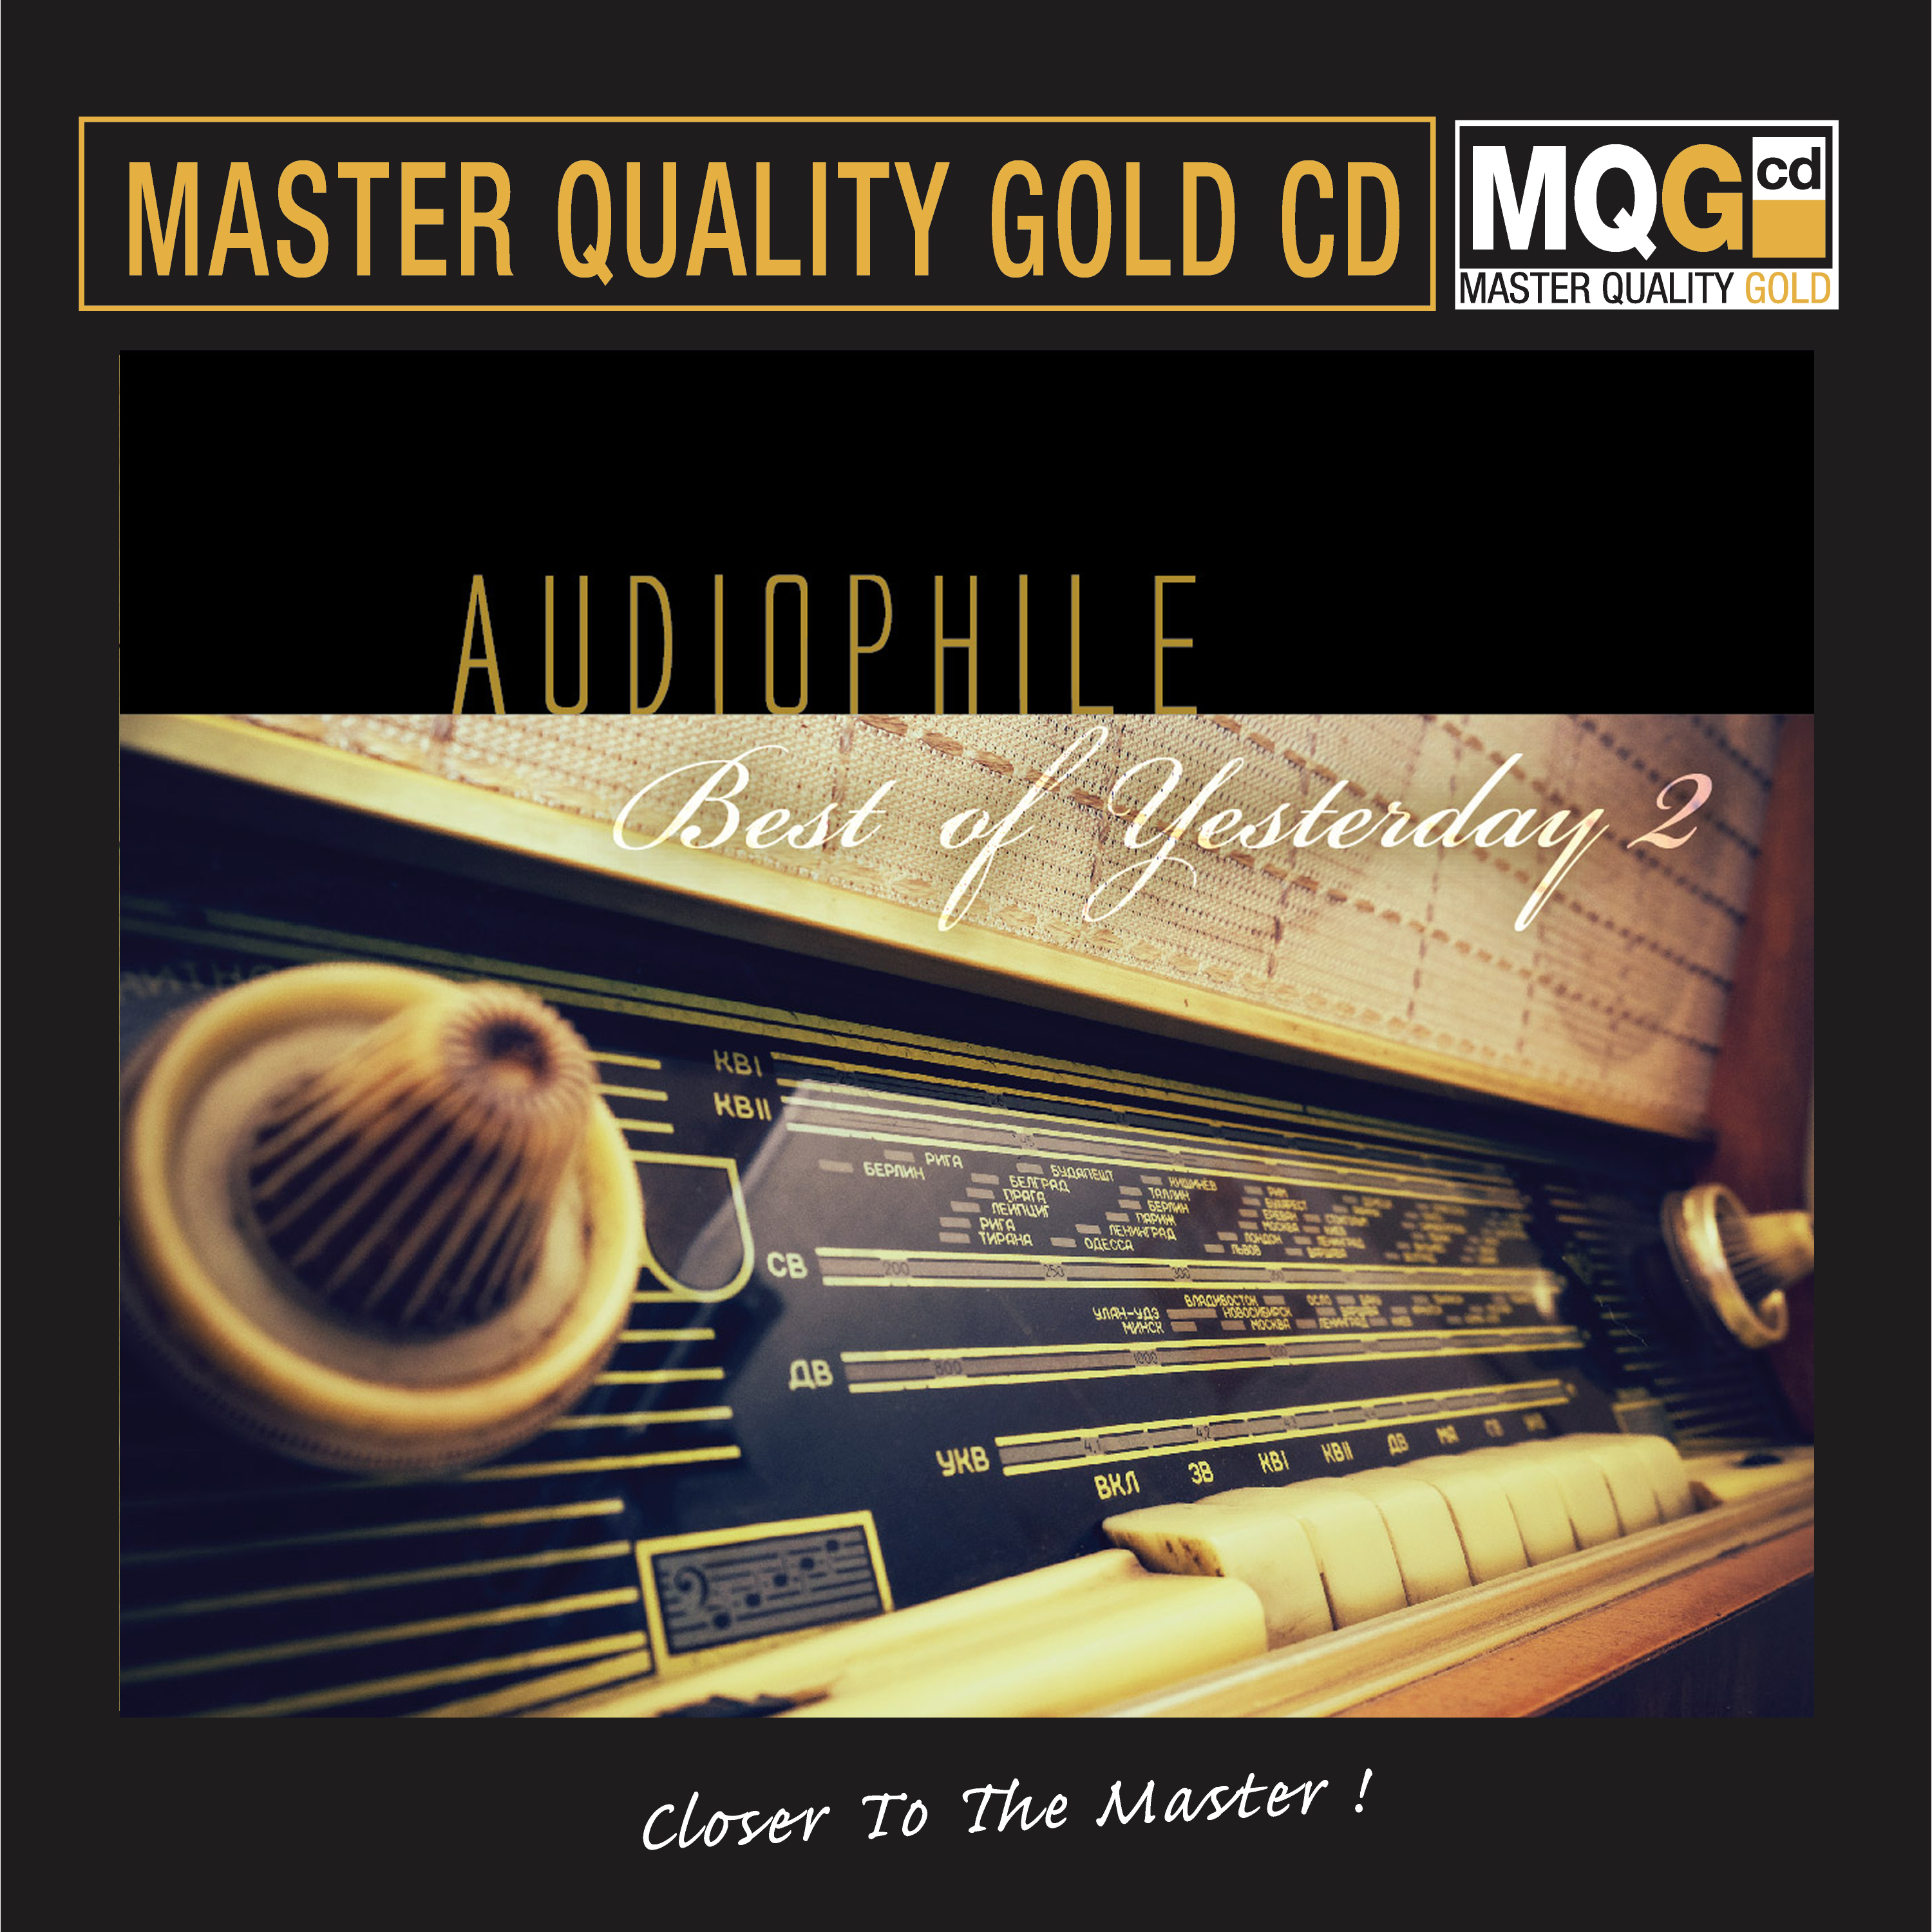 557)Various Artists - Audiophile Best Of Yesterday Vol.2 (MQGCD)